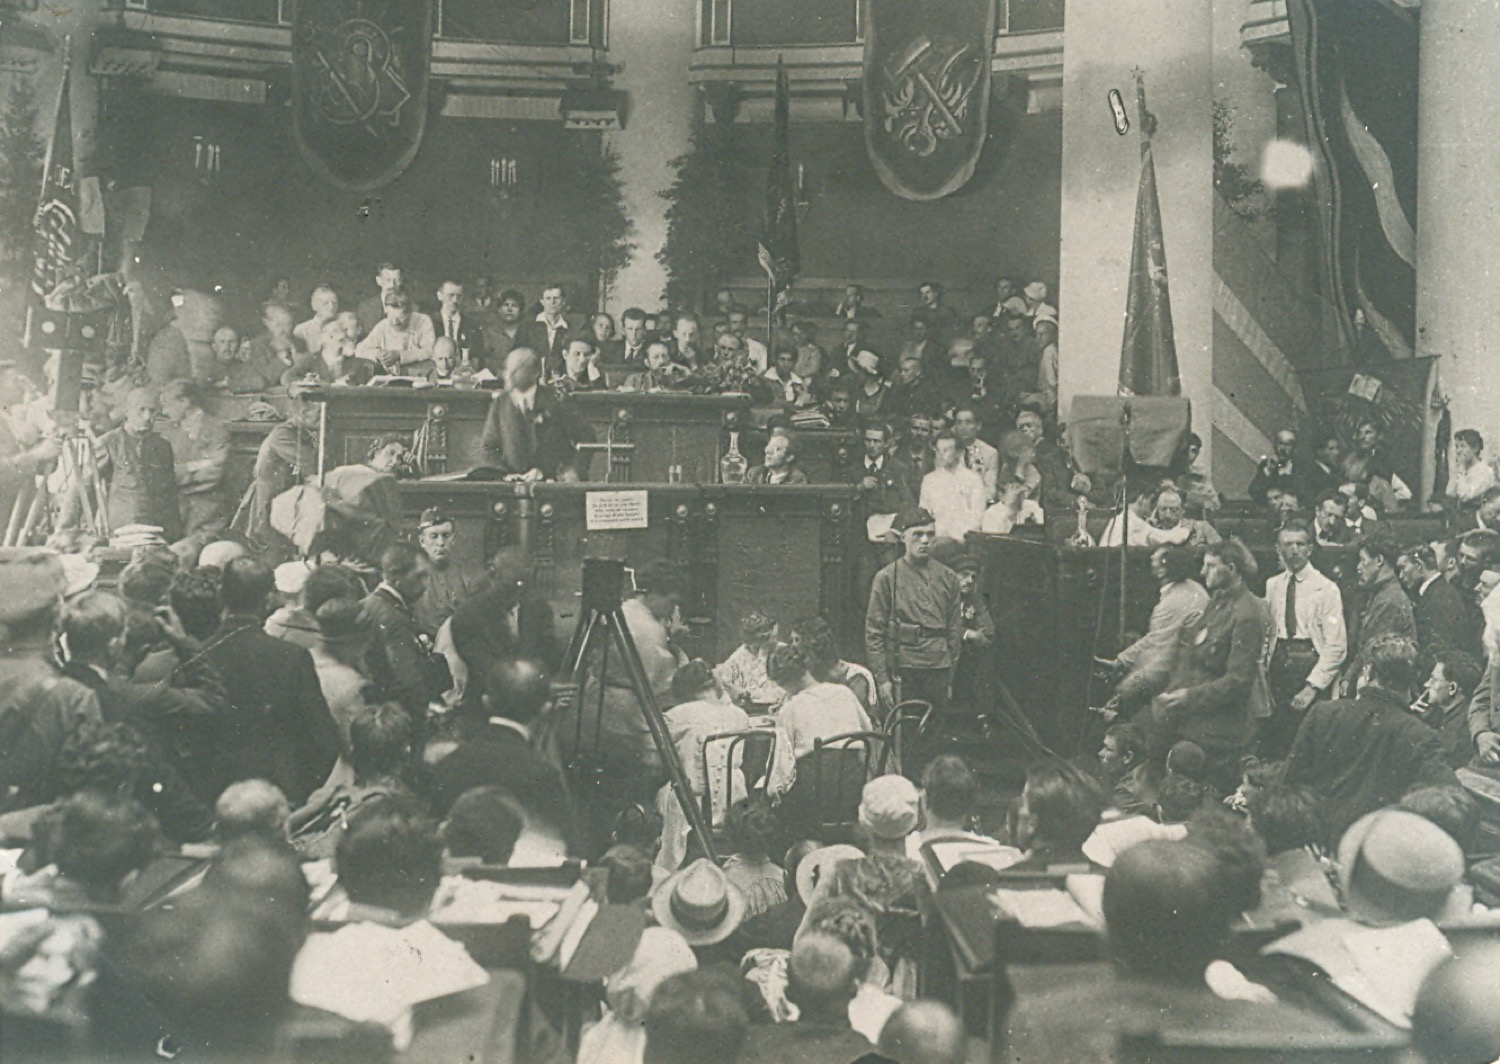 Photo. V. I. Lenin delivers a report on the international situation and the main tasks of the Communist international at the opening ceremony of the Second Congress of Comintern in the Uritsky (Tavrichesky) Palace.  RSFSR, Petrograd. July 19, 1920.